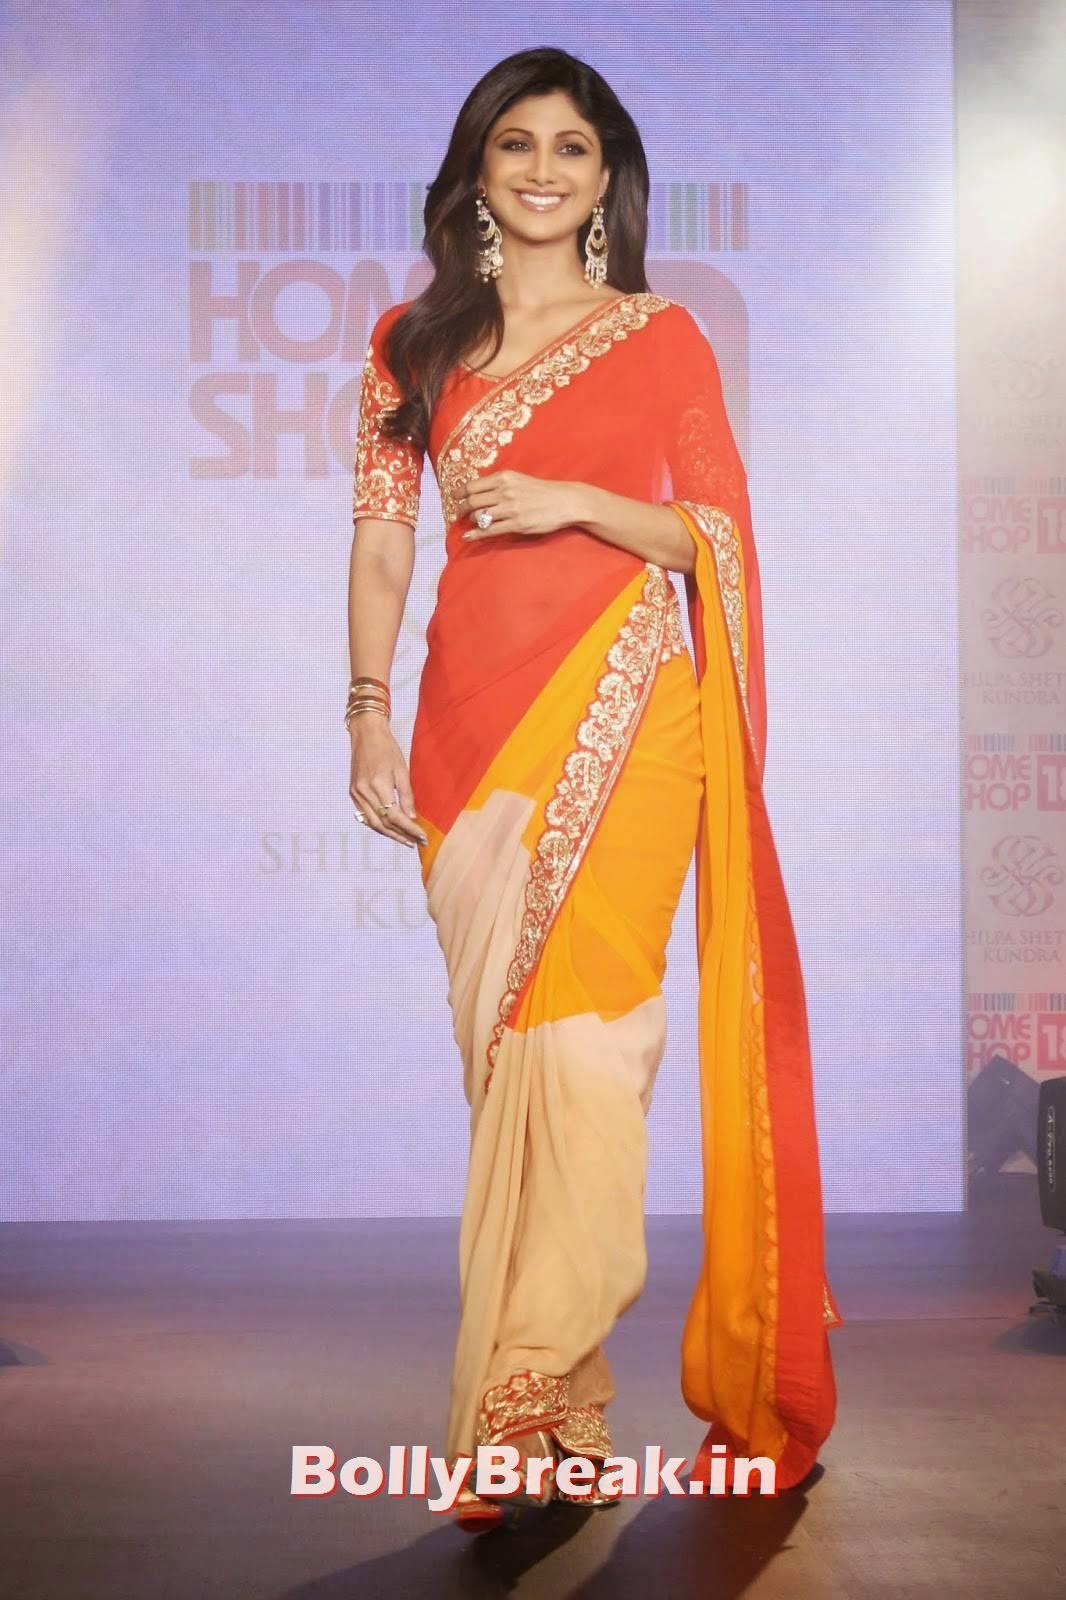 Bollywood Actress Shilpa Shetty Hot Photos In Sexy Orange -6931